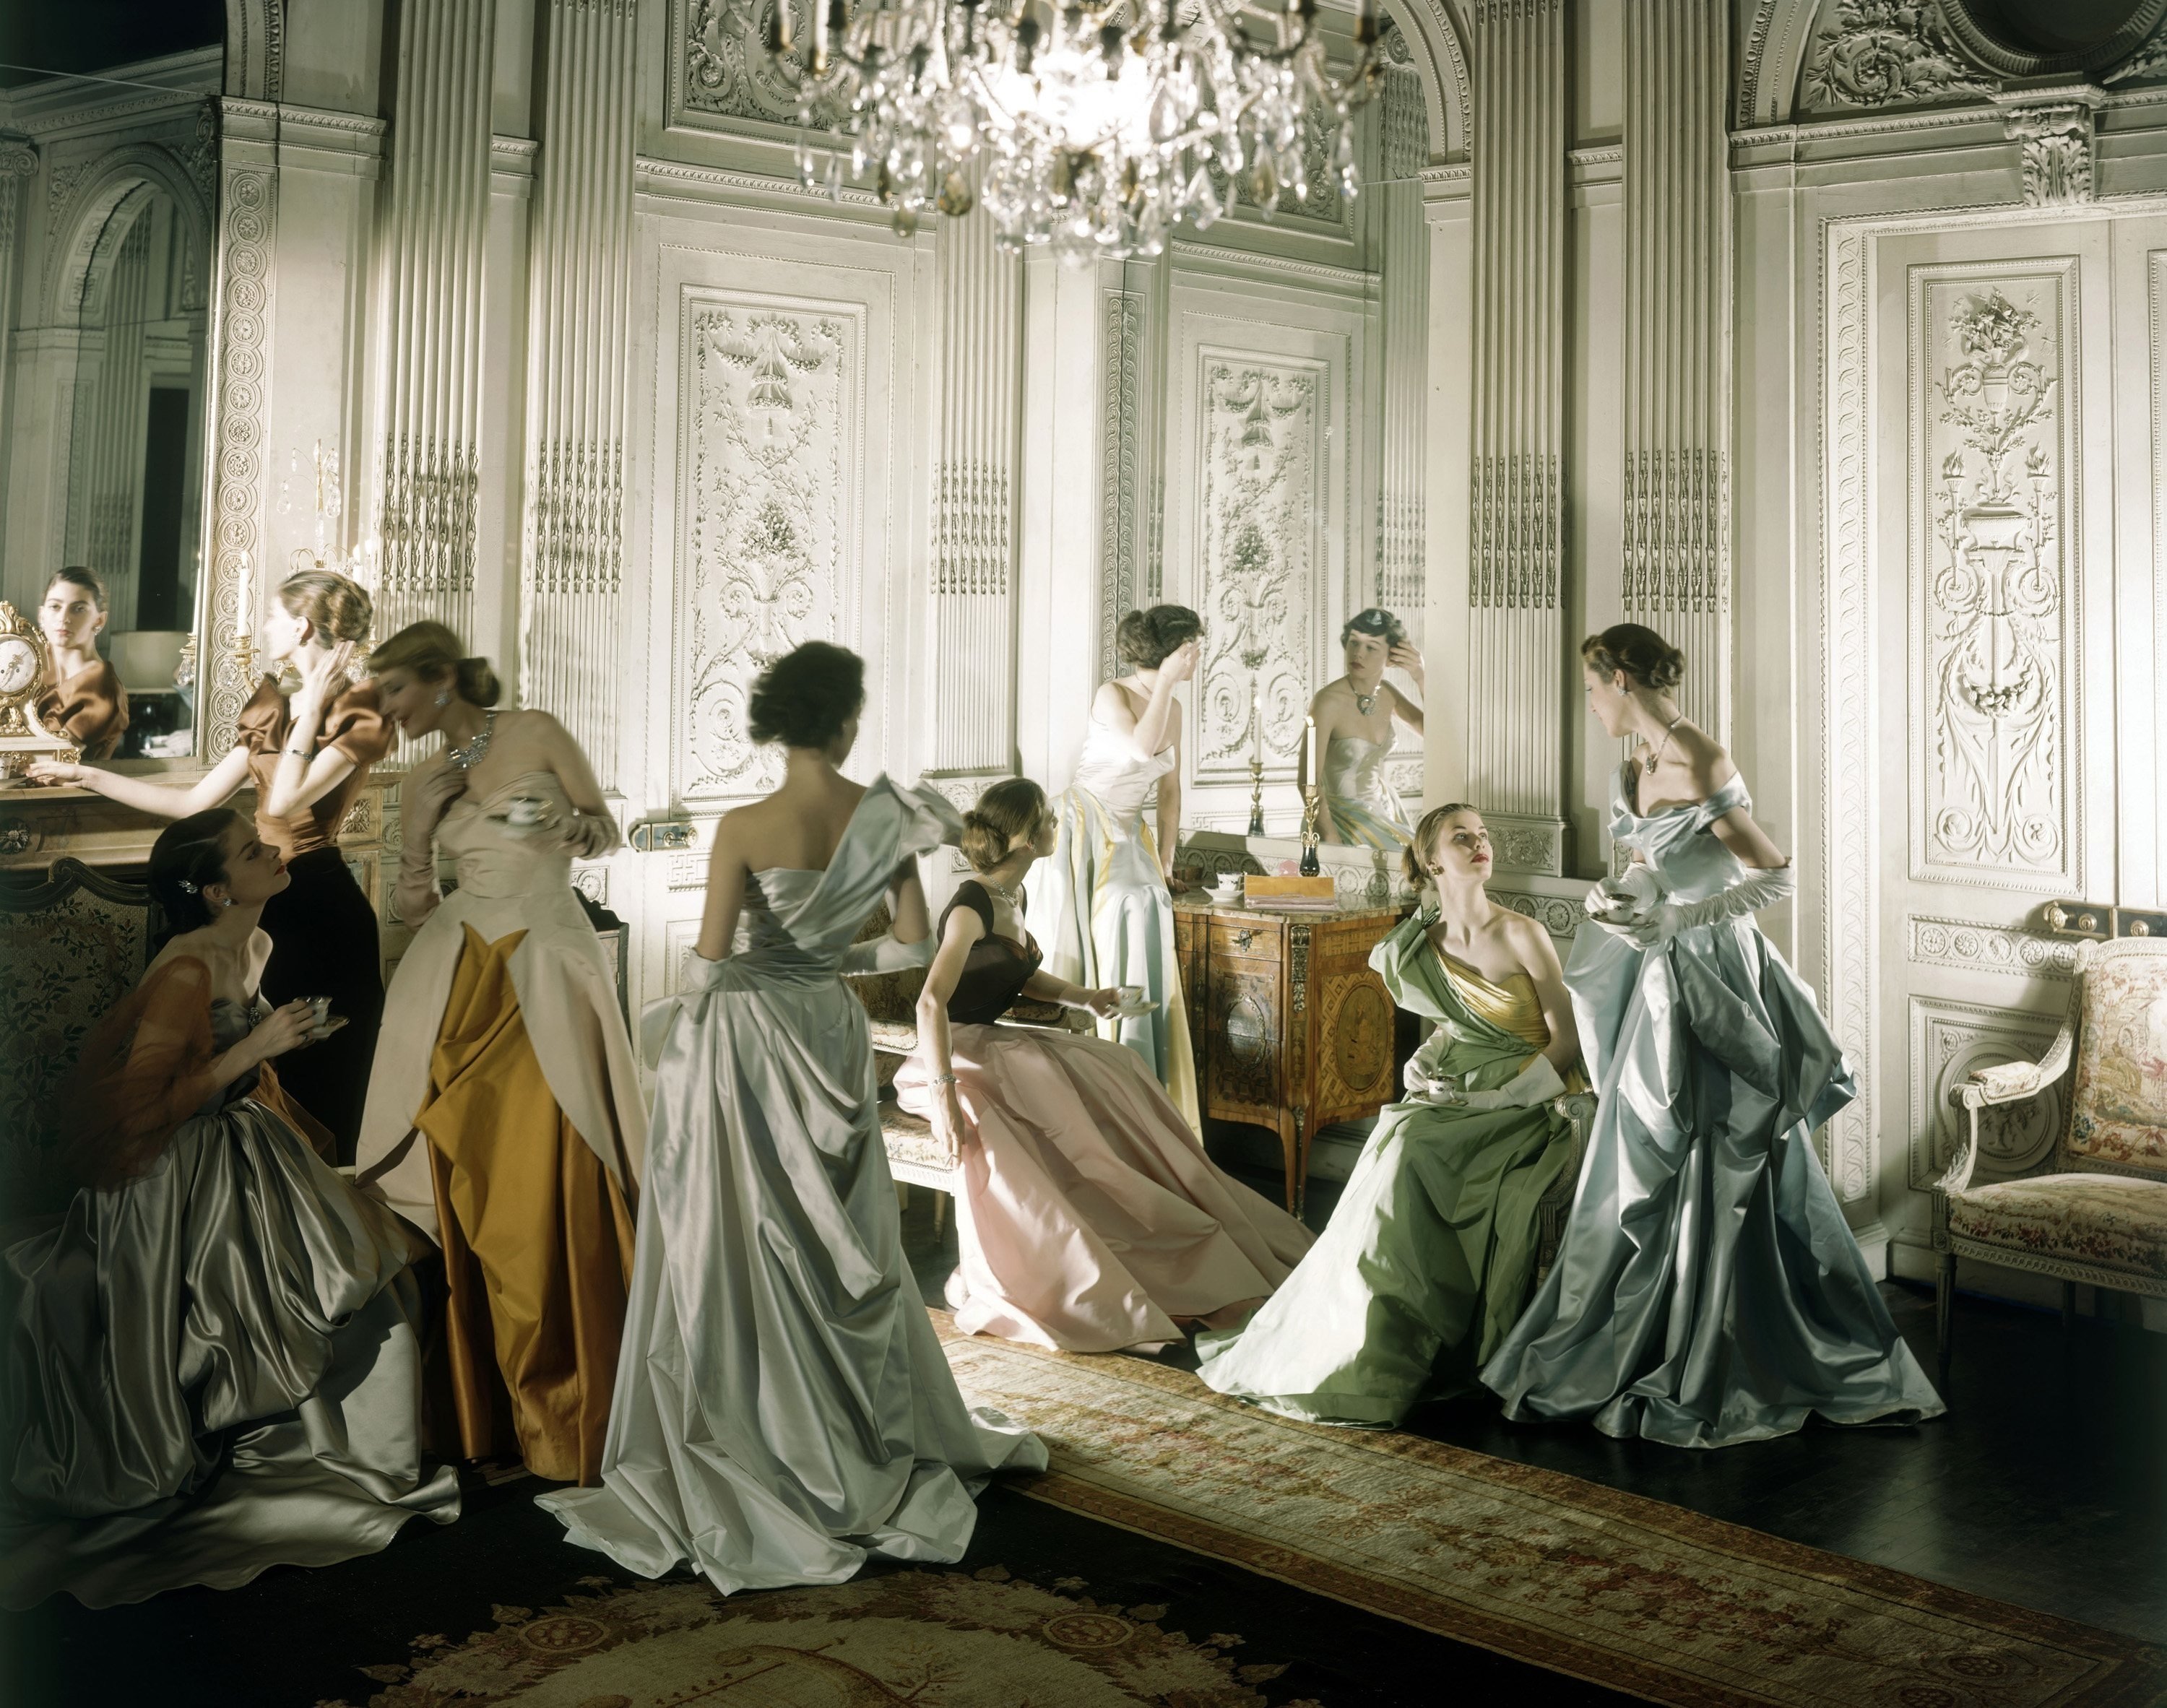 10charles-james-gowns-by-cecil-beaton1948-1.jpg